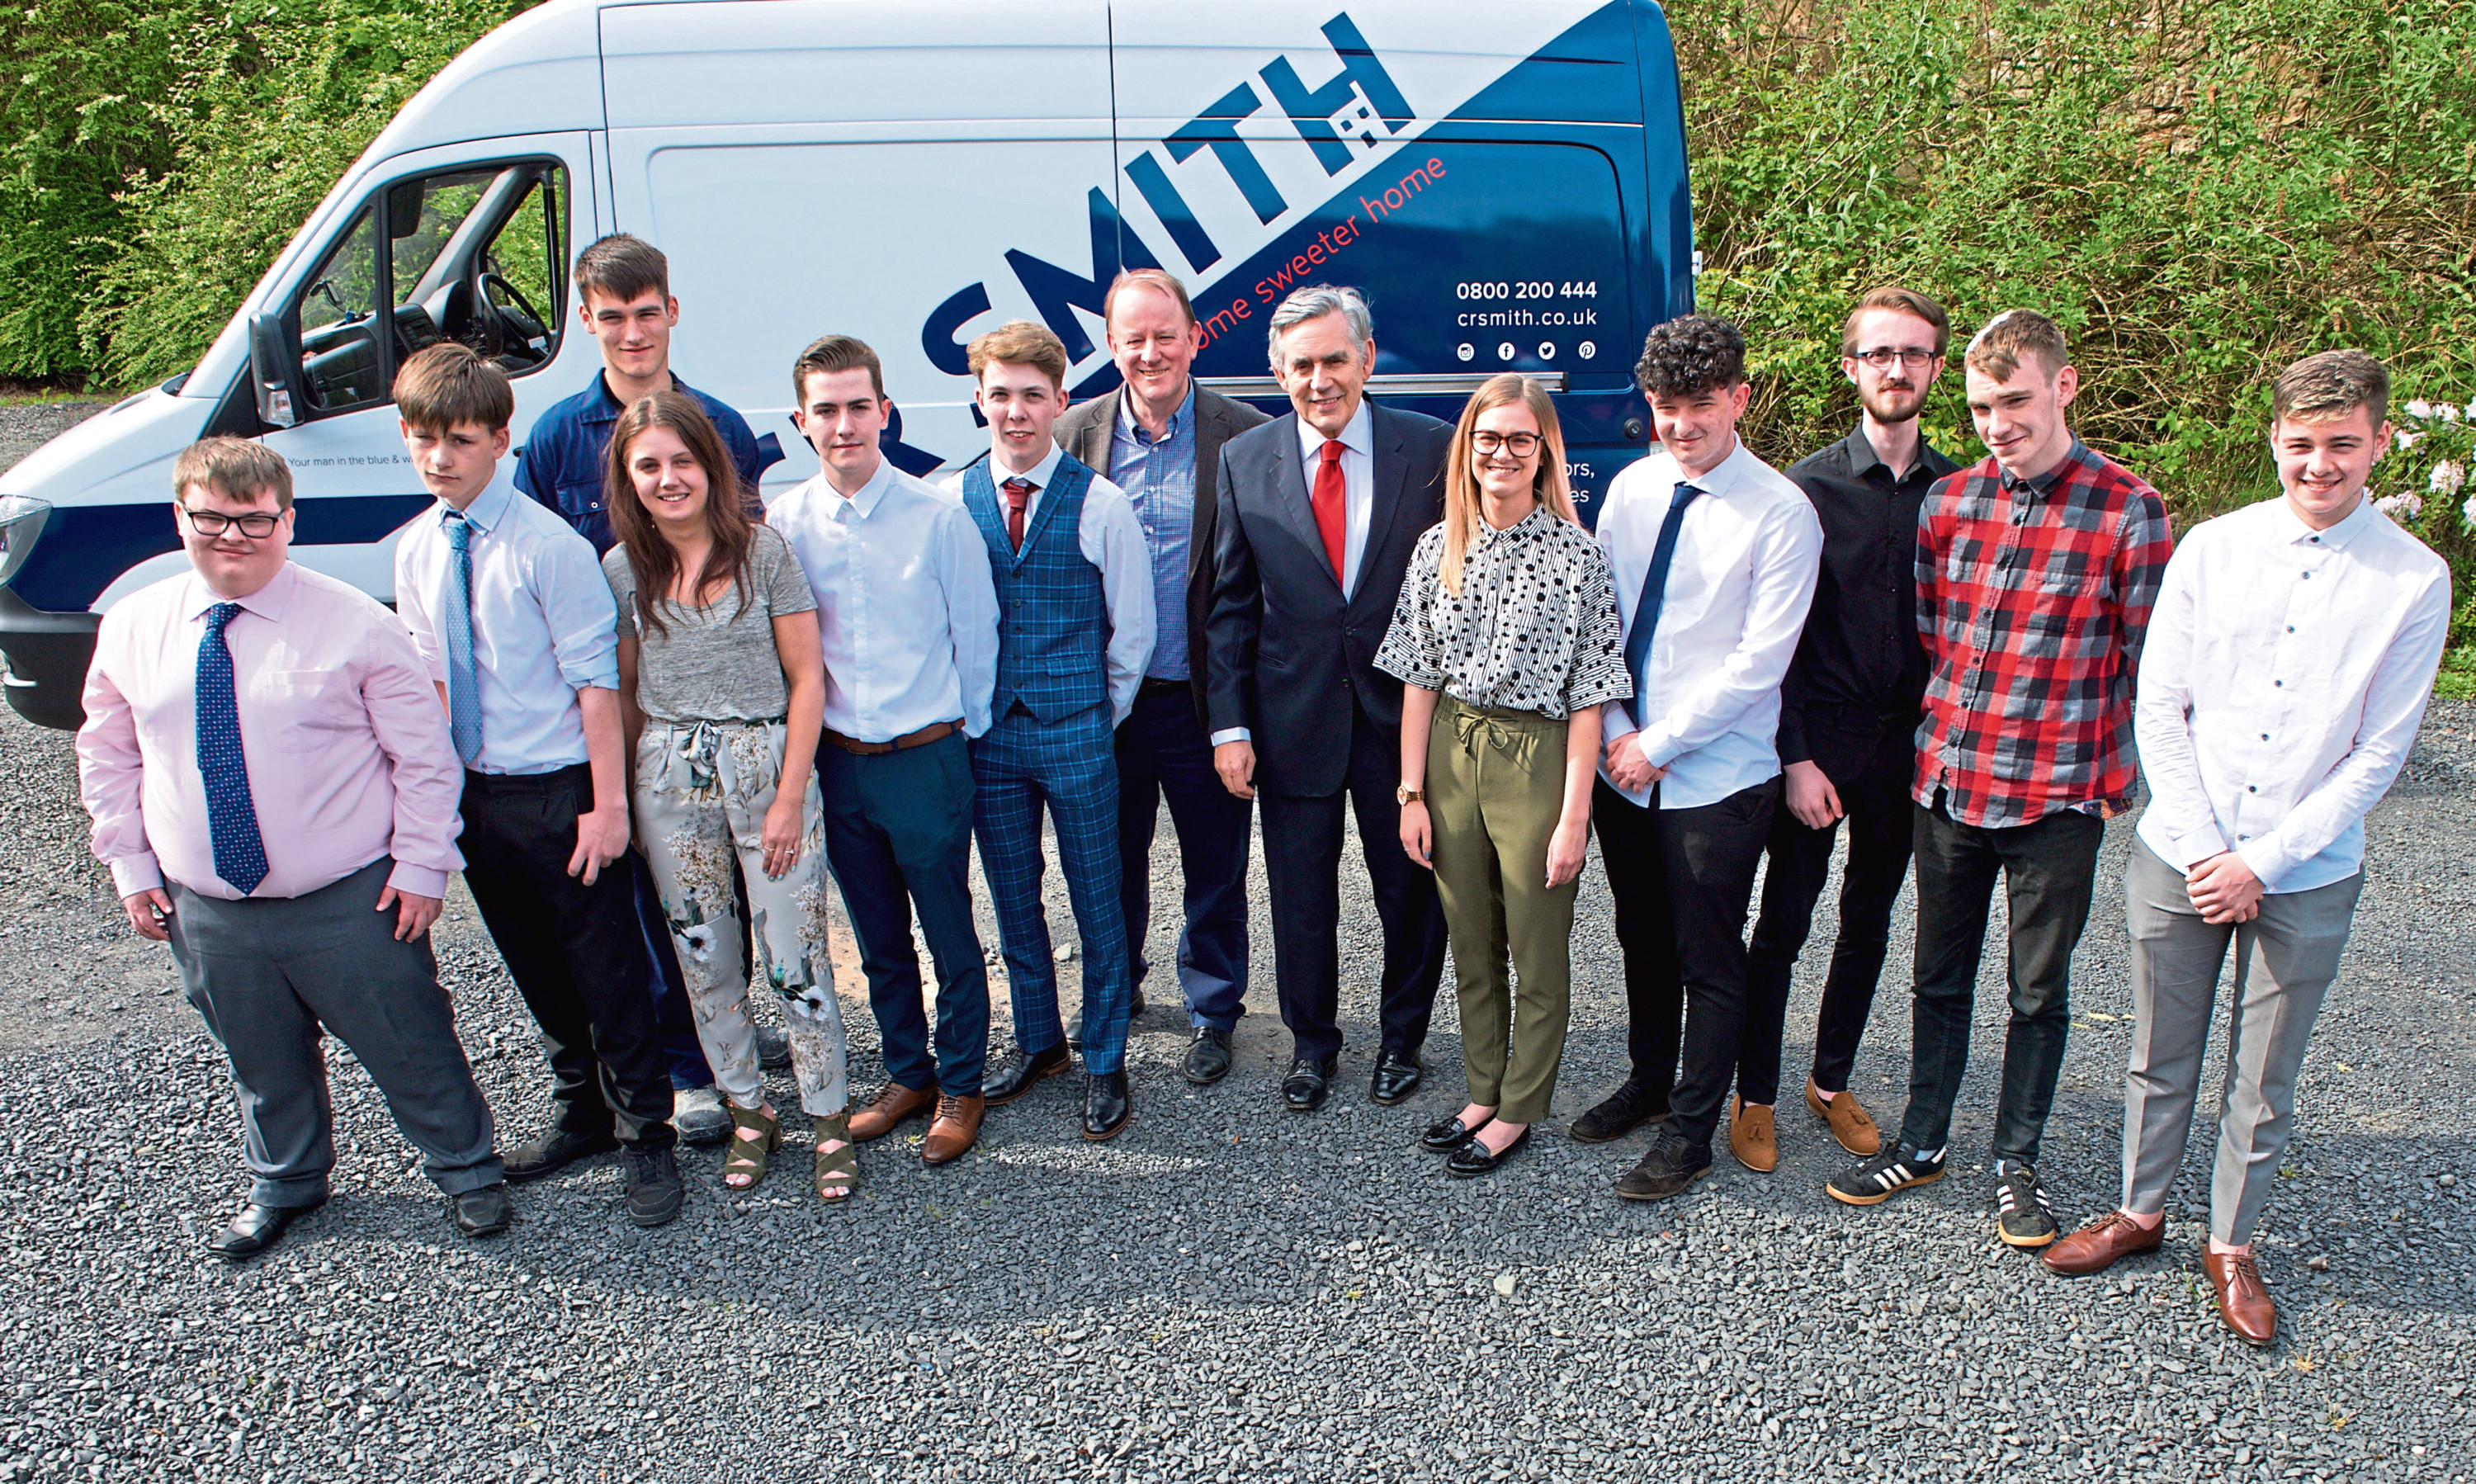 Former Prime Minister Gordon Brown recently visited a CR Smith-run Academy to show his support for the Hand Picked programme.